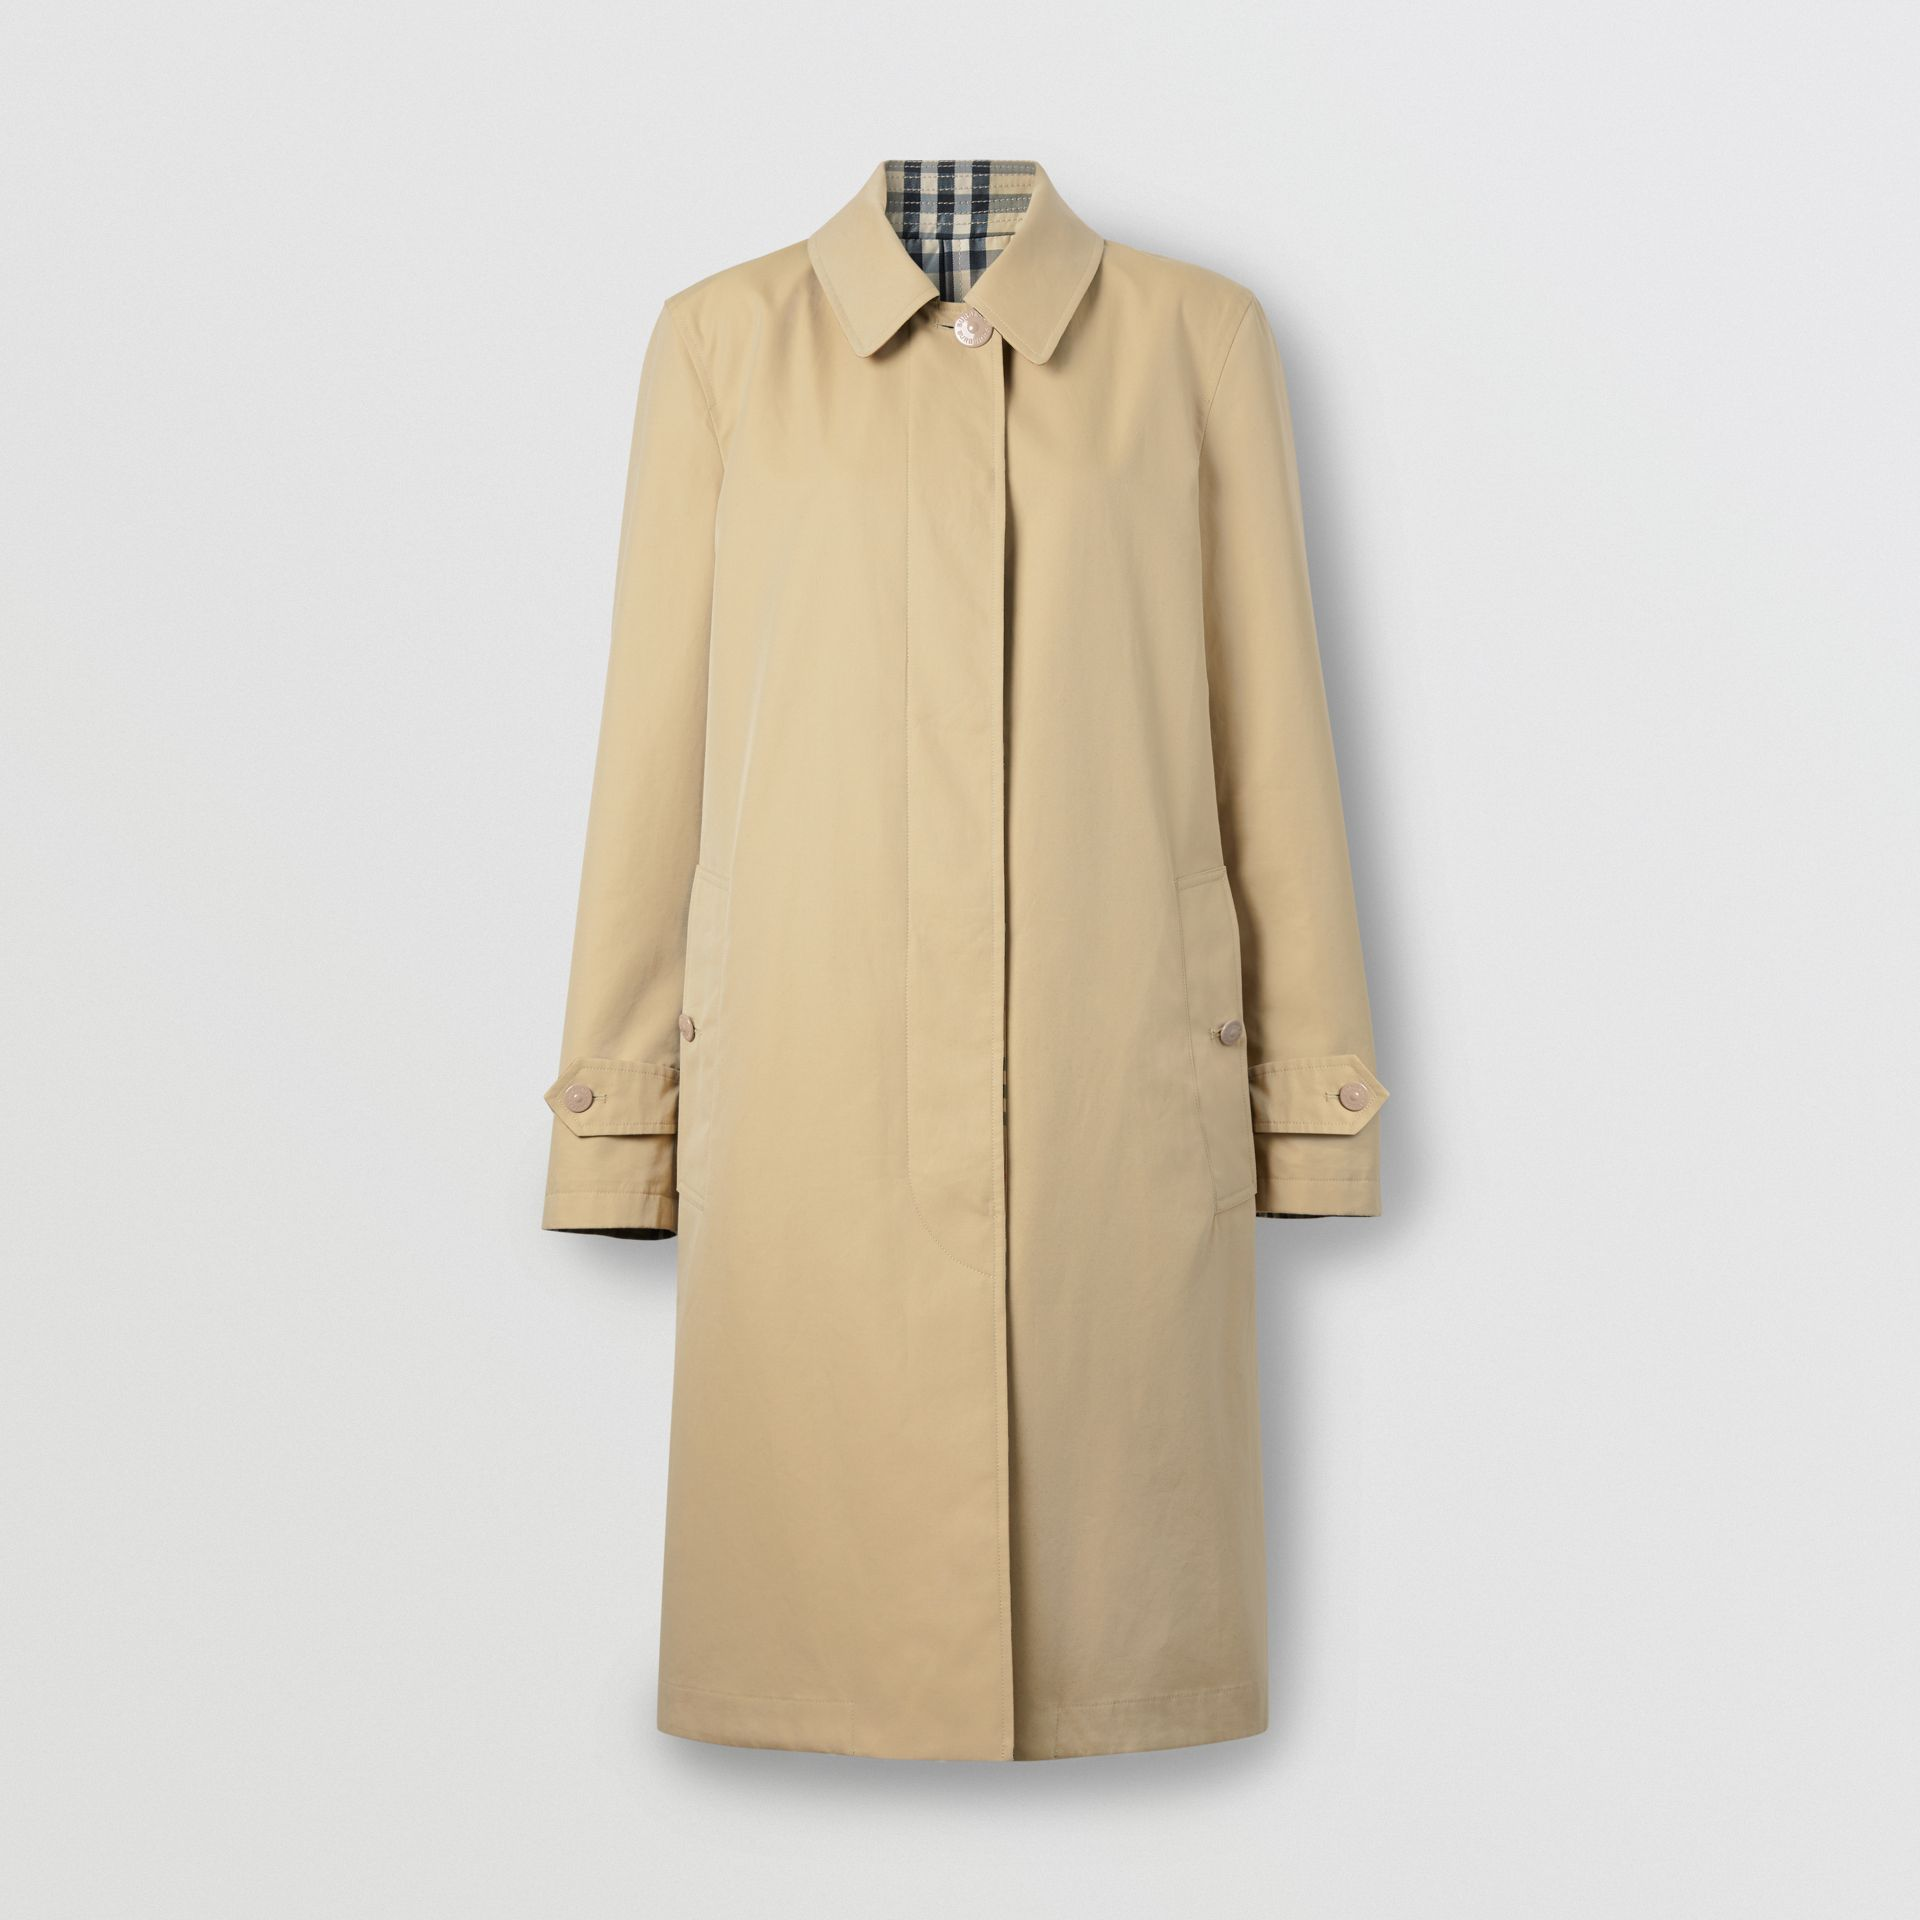 Reversible Cotton and Recycled Polyester Car Coat in Honey - Women | Burberry - gallery image 3